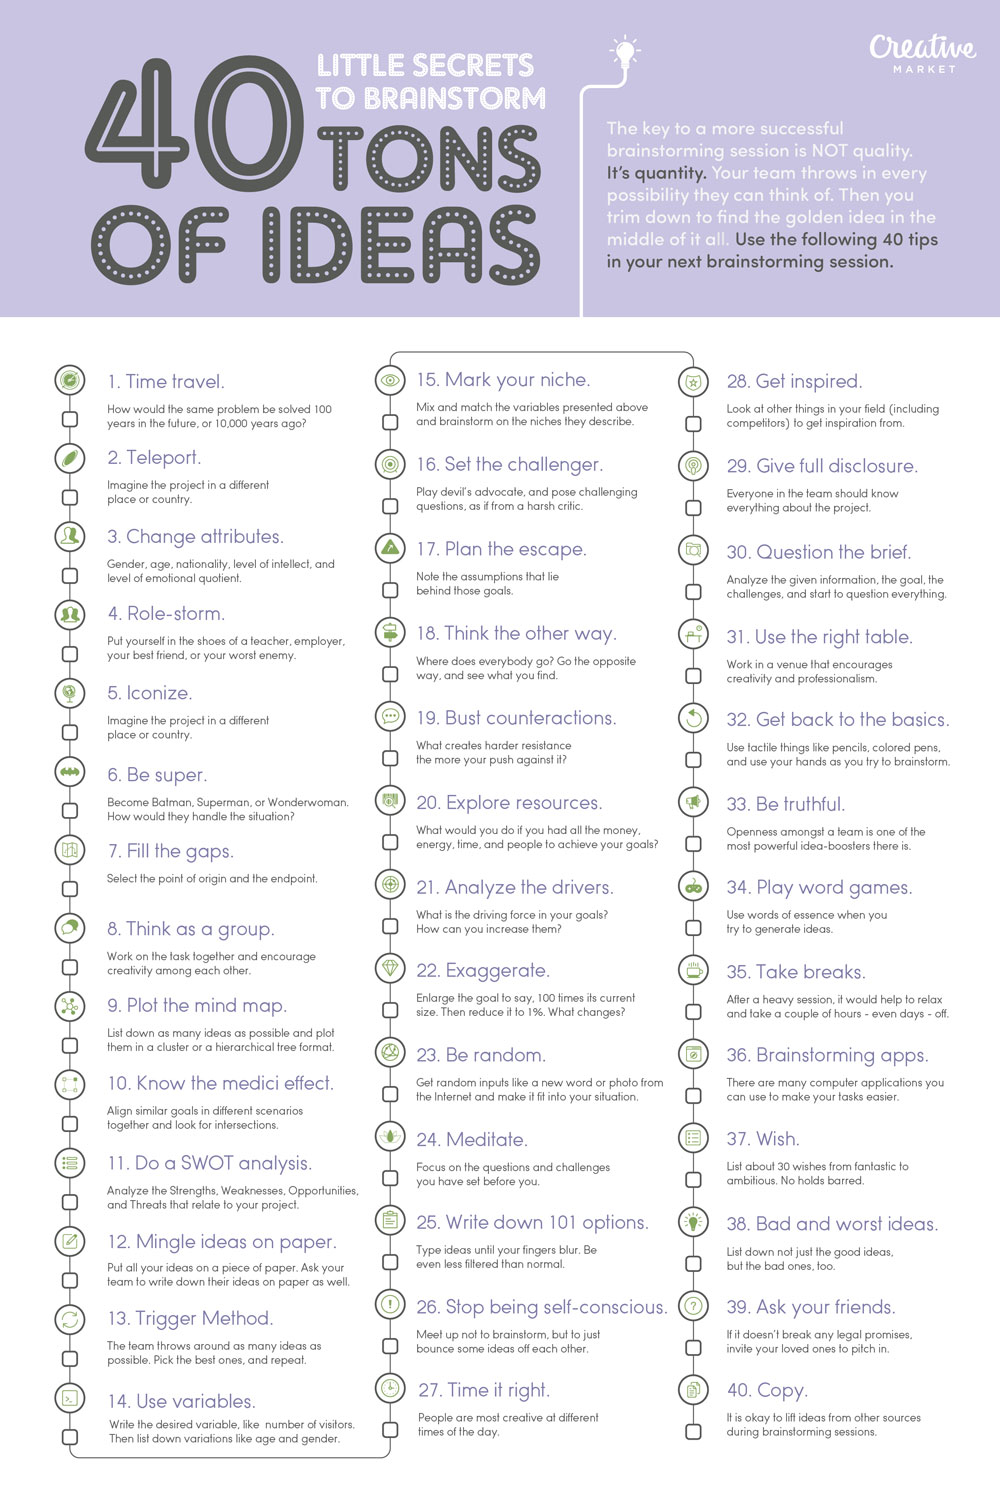 40-little-secrets-to-brainstorm-tons-of-ideas-infographic-small